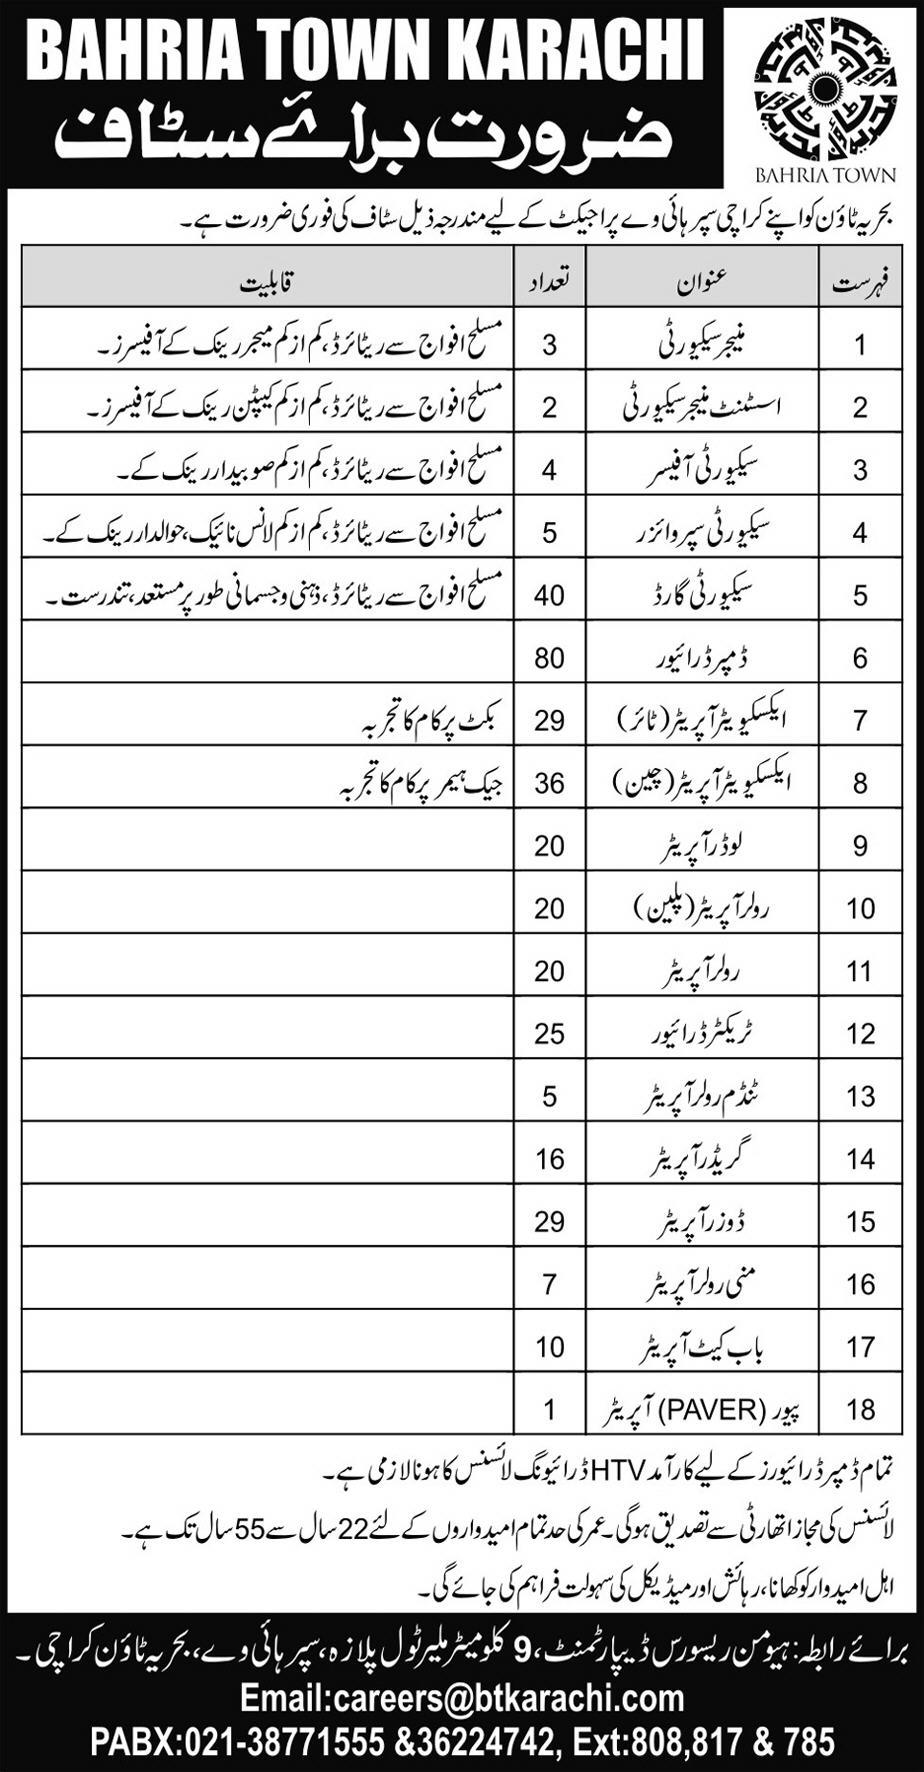 Bahria Town Jobs 2017 for Project of Karachi Super Highway